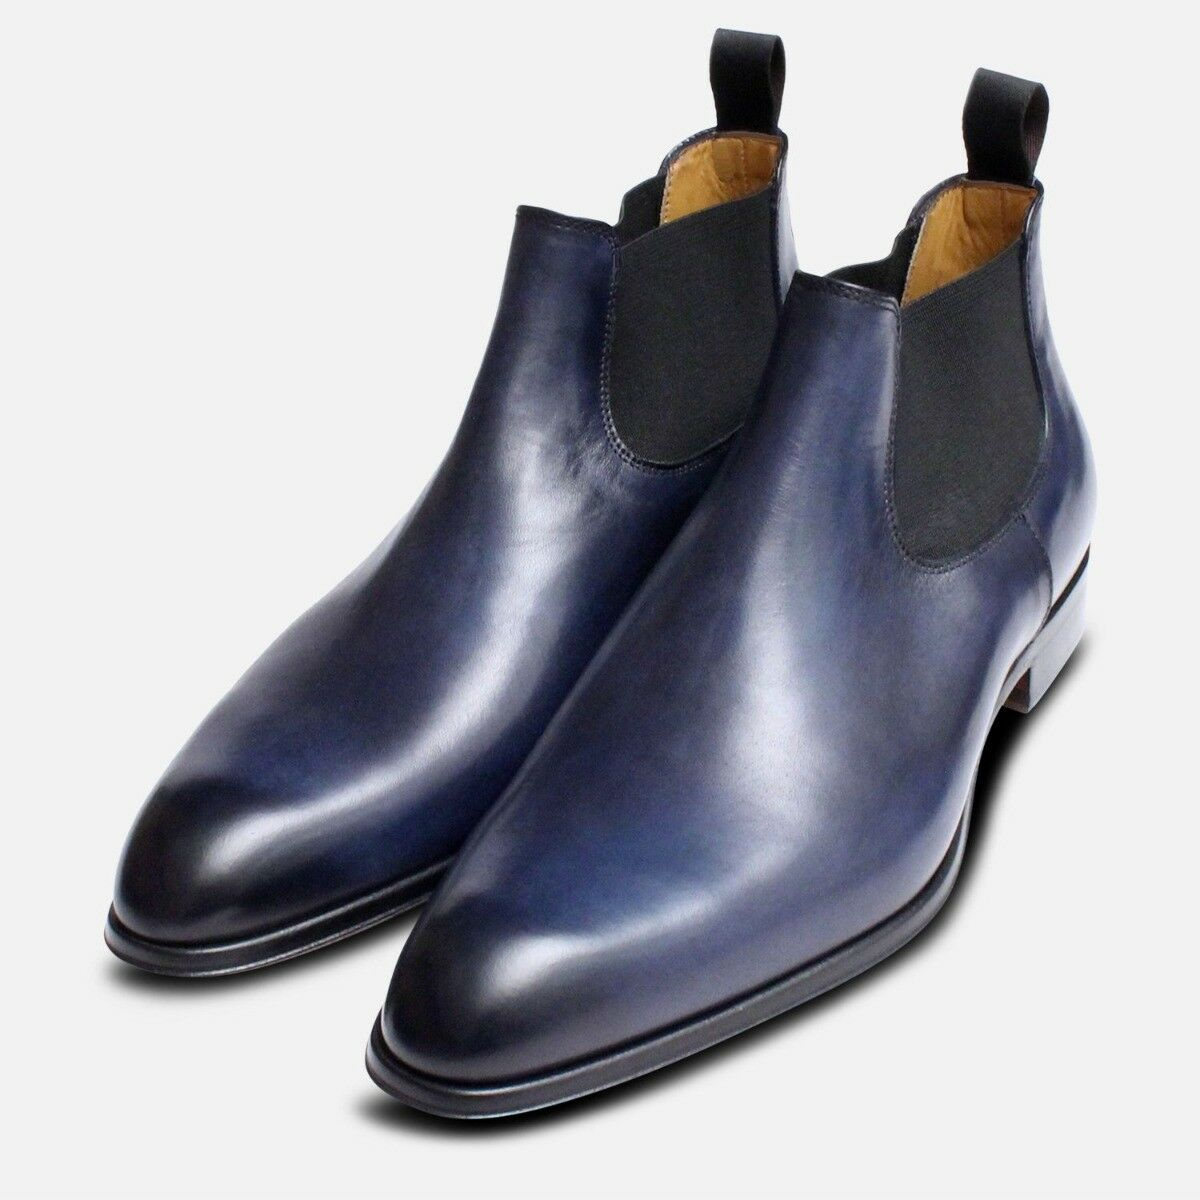 Mens Beatle Boots in Dark bluee Leather